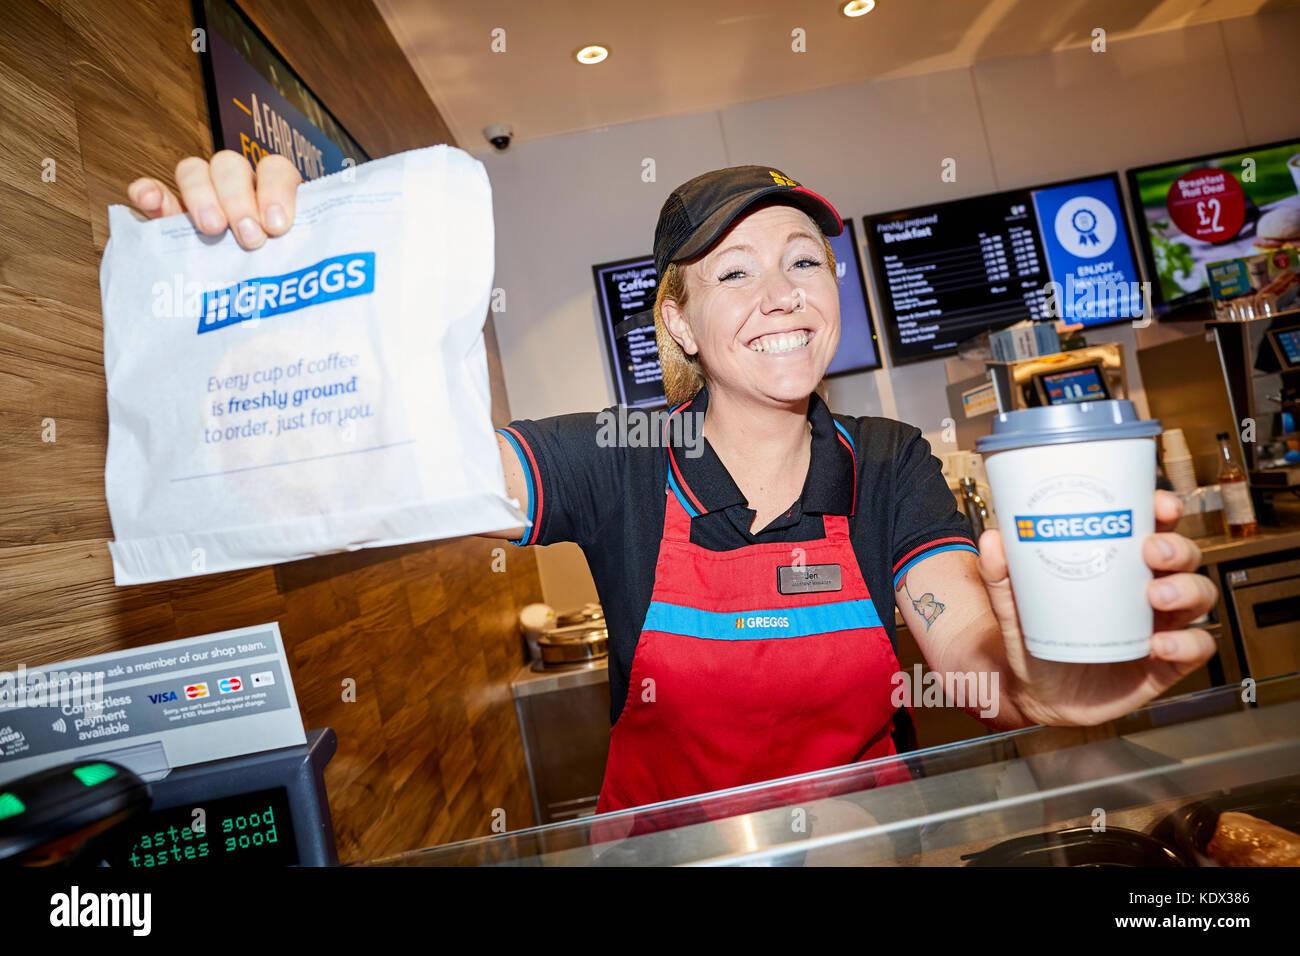 Bolton Interchange opens with a new Greggs shop inside   Pictured manager Jen EckersleyJRW Group rebrand to Ripe. - Stock Image